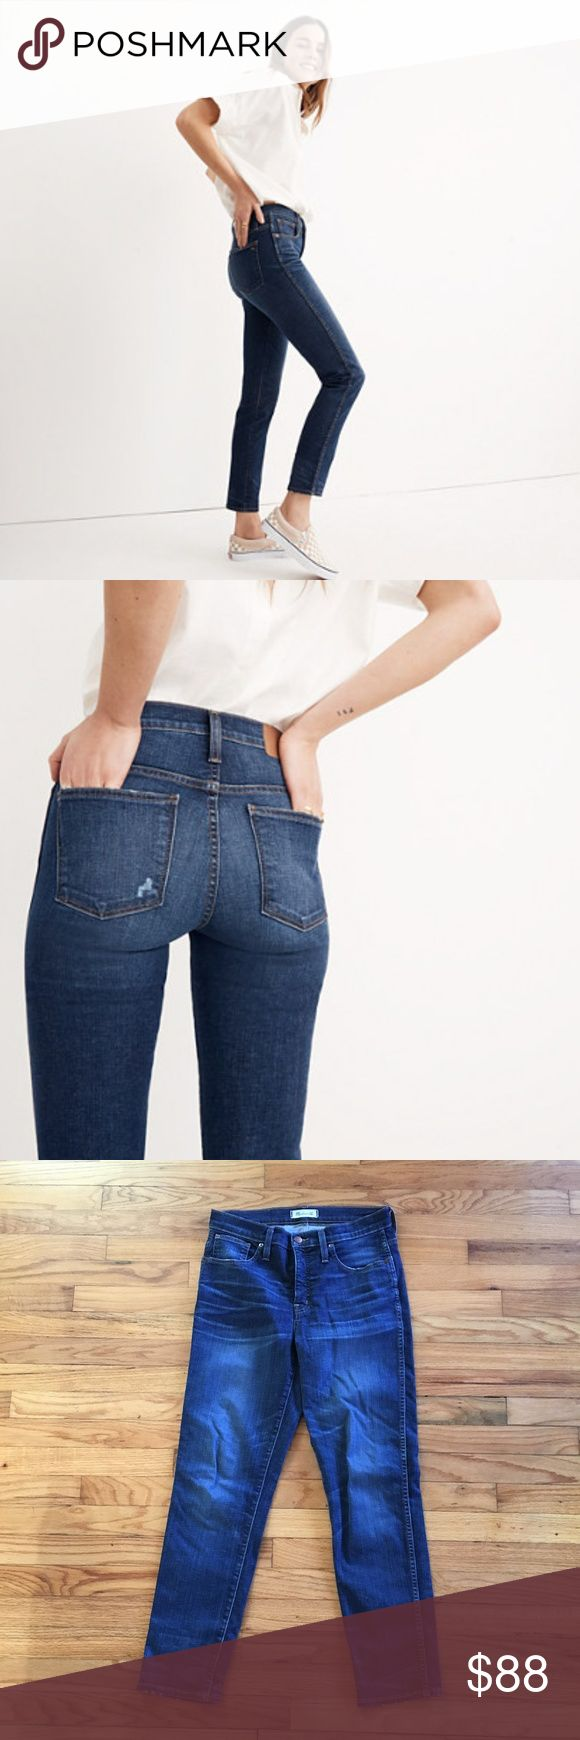 """Madewell Slim Straight Jeans in William Wash EUC jeans. Only worn a handful of times.   At once relaxed and refined, these just-right straight jeans have a French-lady-with-a-capsule-wardrobe feel. Plus, the 9 1/2"""" rise has an extra layer of holds-you-in sorcery in front, thanks to our supersleek Magic Pockets.. * Premium 88% cotton/8% poly/4% elastane denim  * Inseam: 28 1/2""""; leg opening for size 25: 12 1/4"""" Madewell Jeans Straight Leg"""